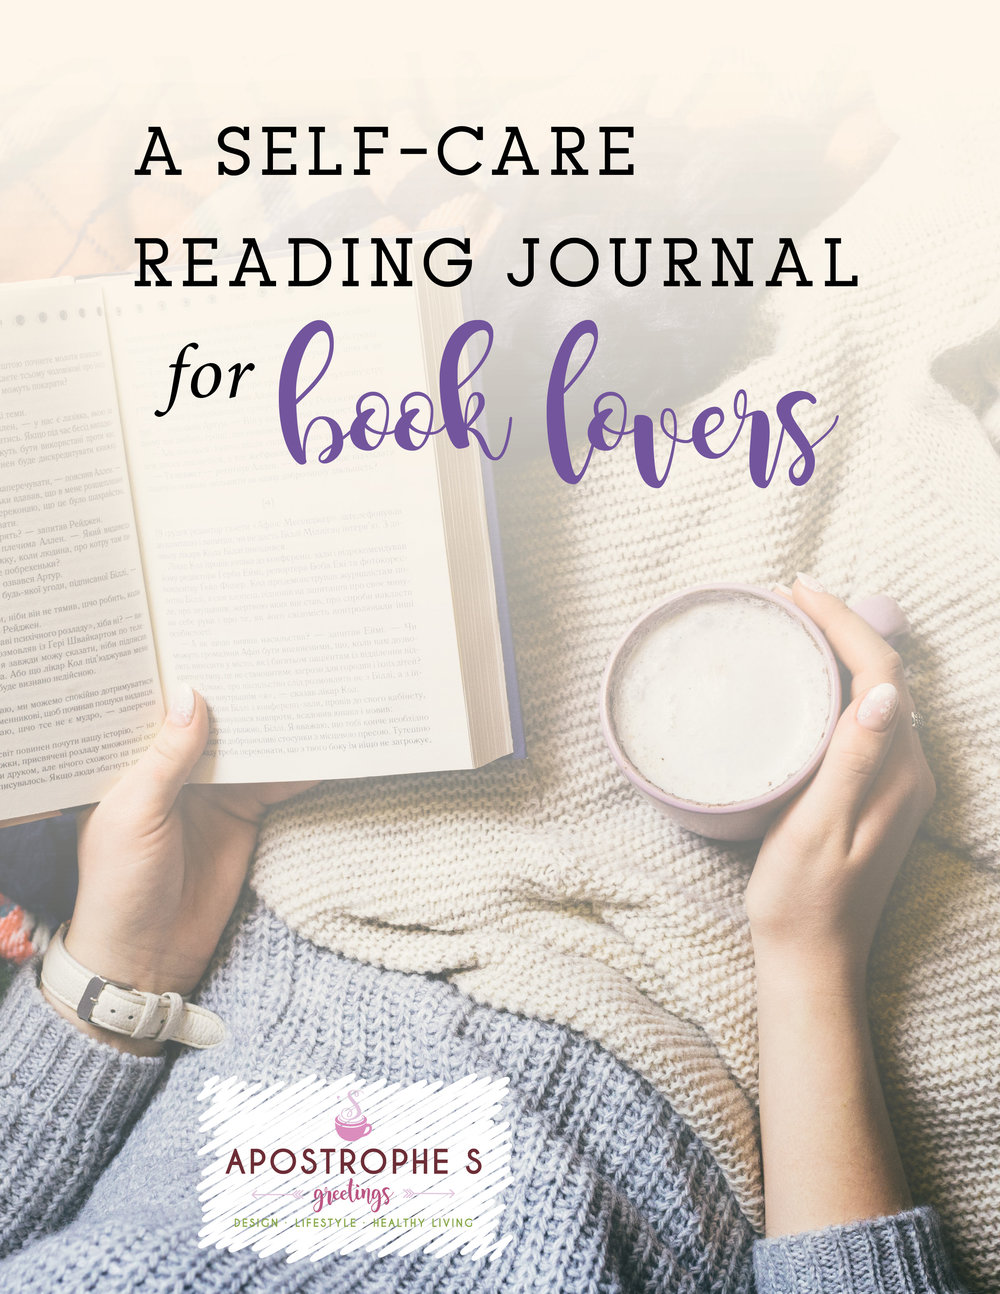 Book Lovers Reading Journal.jpg